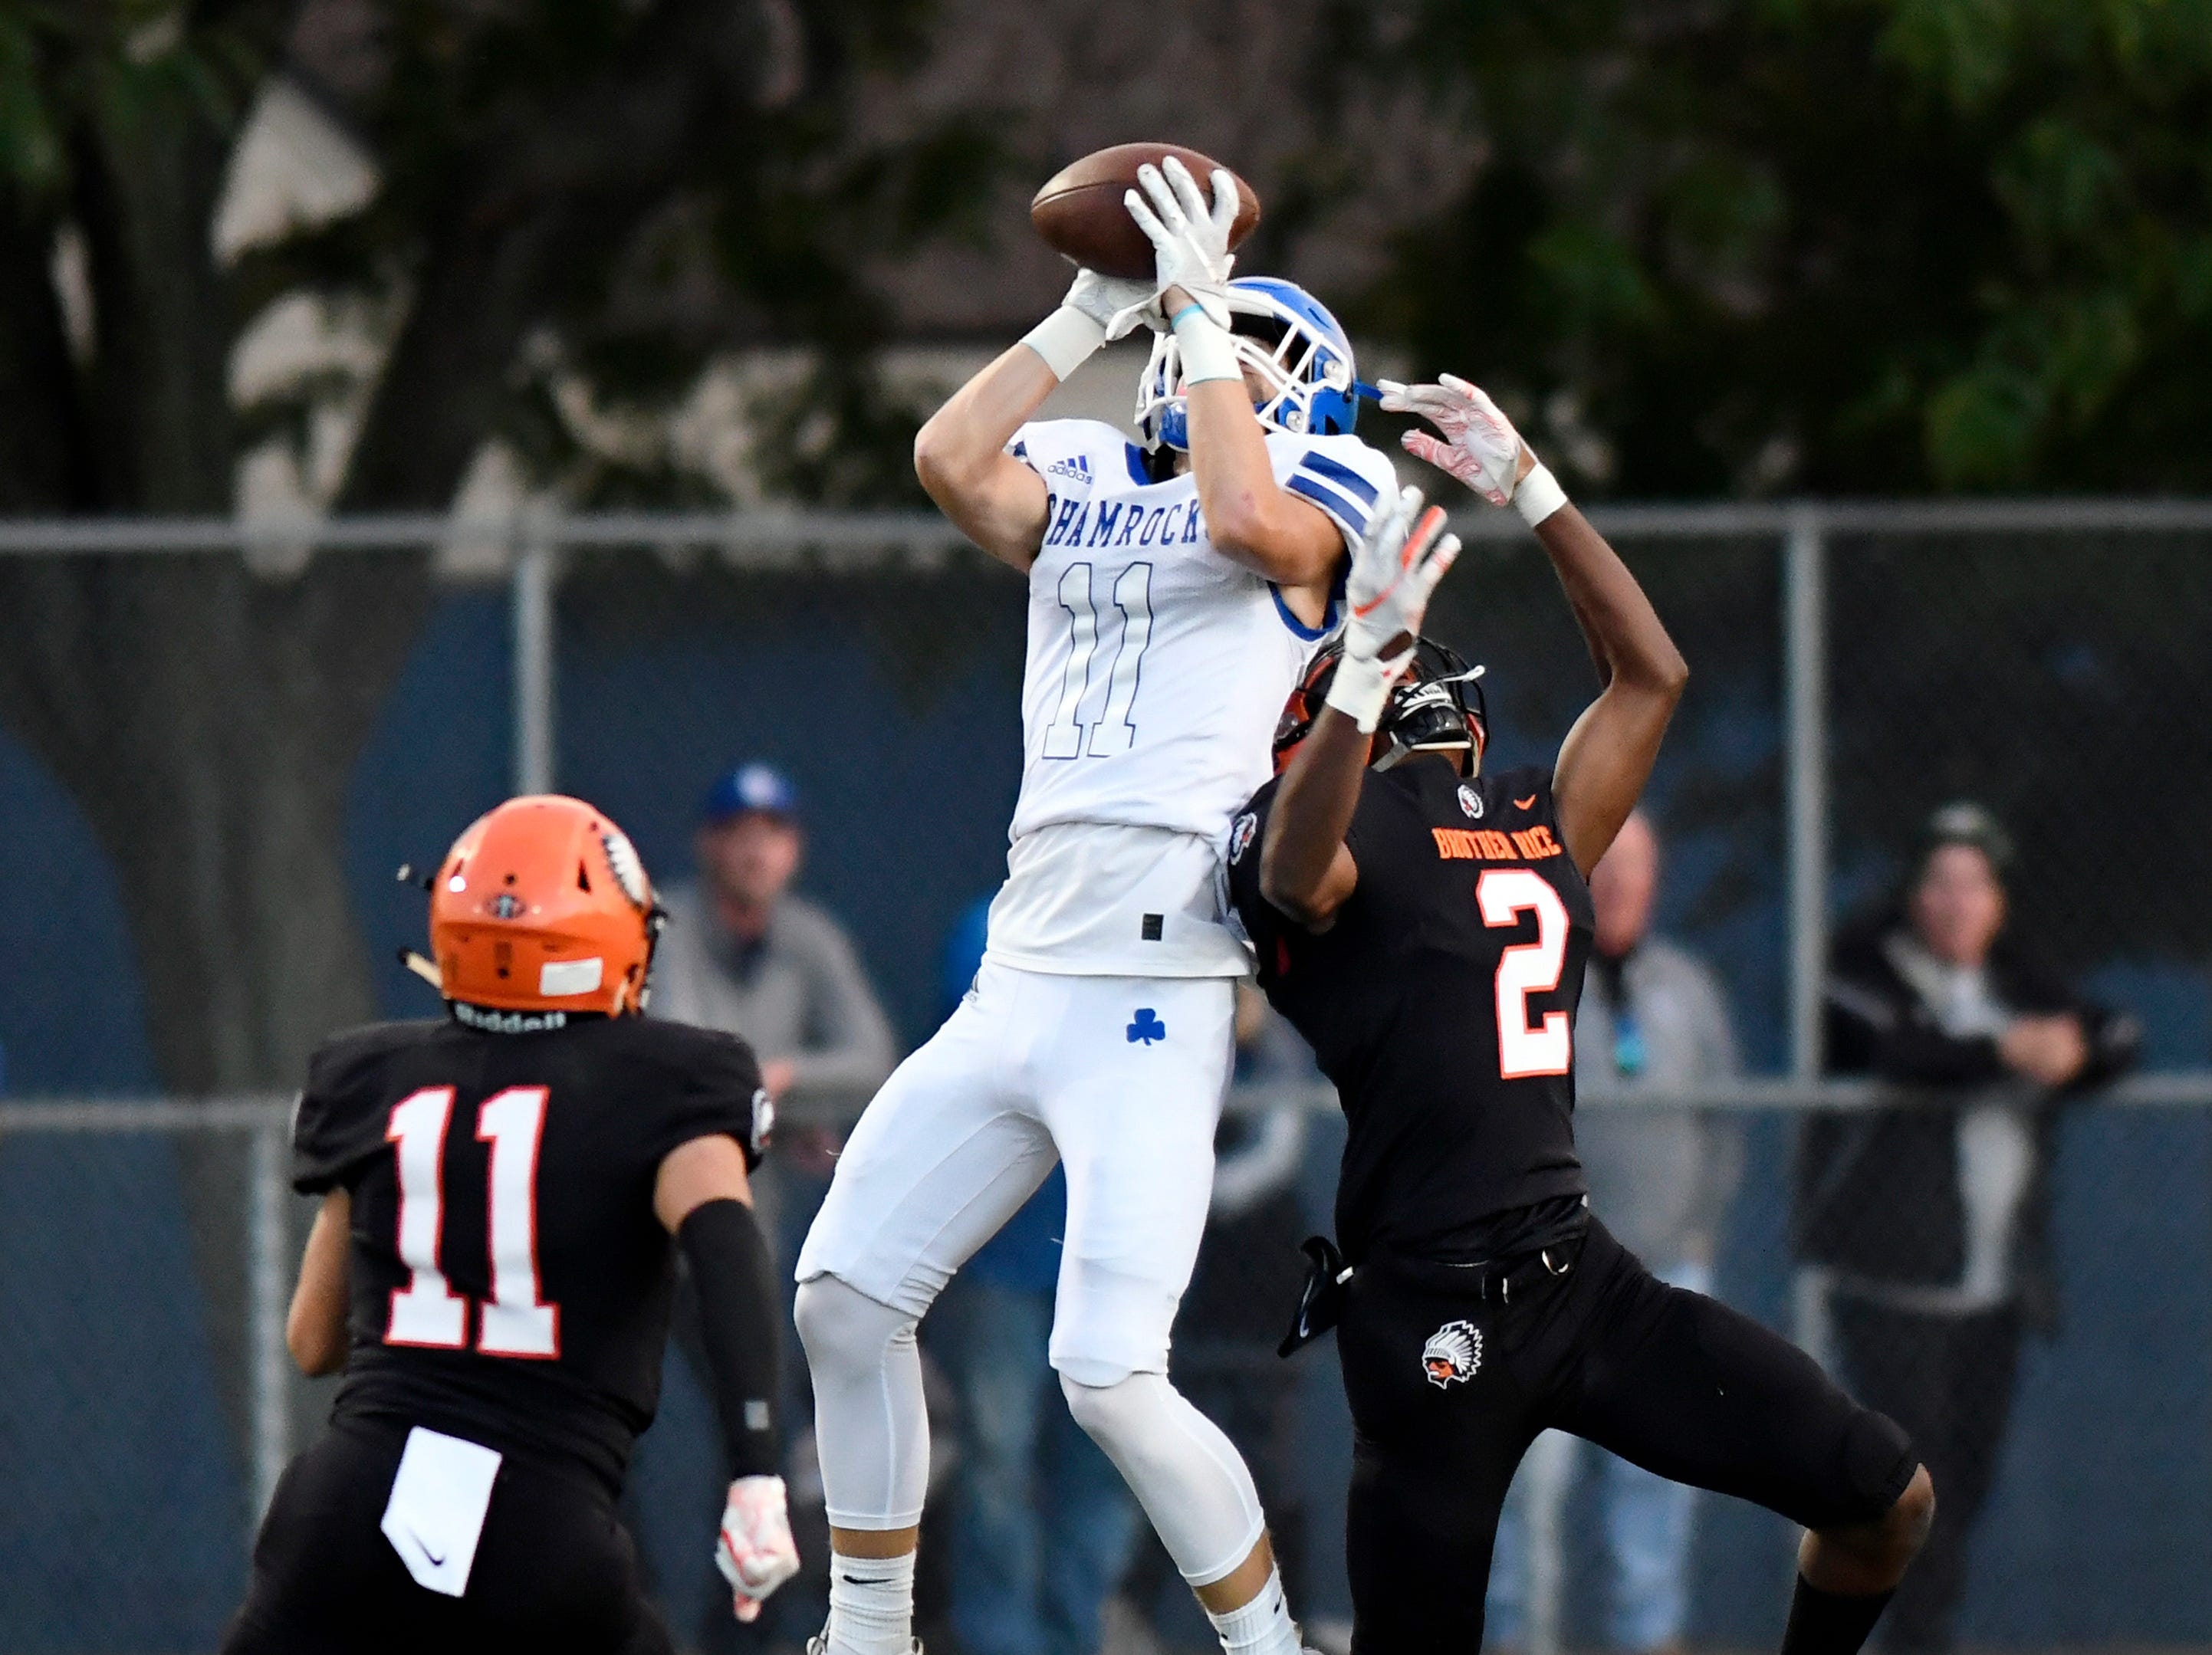 Detroit Catholic Central wide receiver Nate Anderson (11), middle, hauls in a pass in between Birmingham Brother Rice safety Giavino Murad (11), left, and cornerback Jonathon Tillman (2) in the second quarter, Saturday, Sept. 22, 2018 at Hurley Field in Berkley, Mich.  Catholic Central defeated Brother Rice, 21-0.